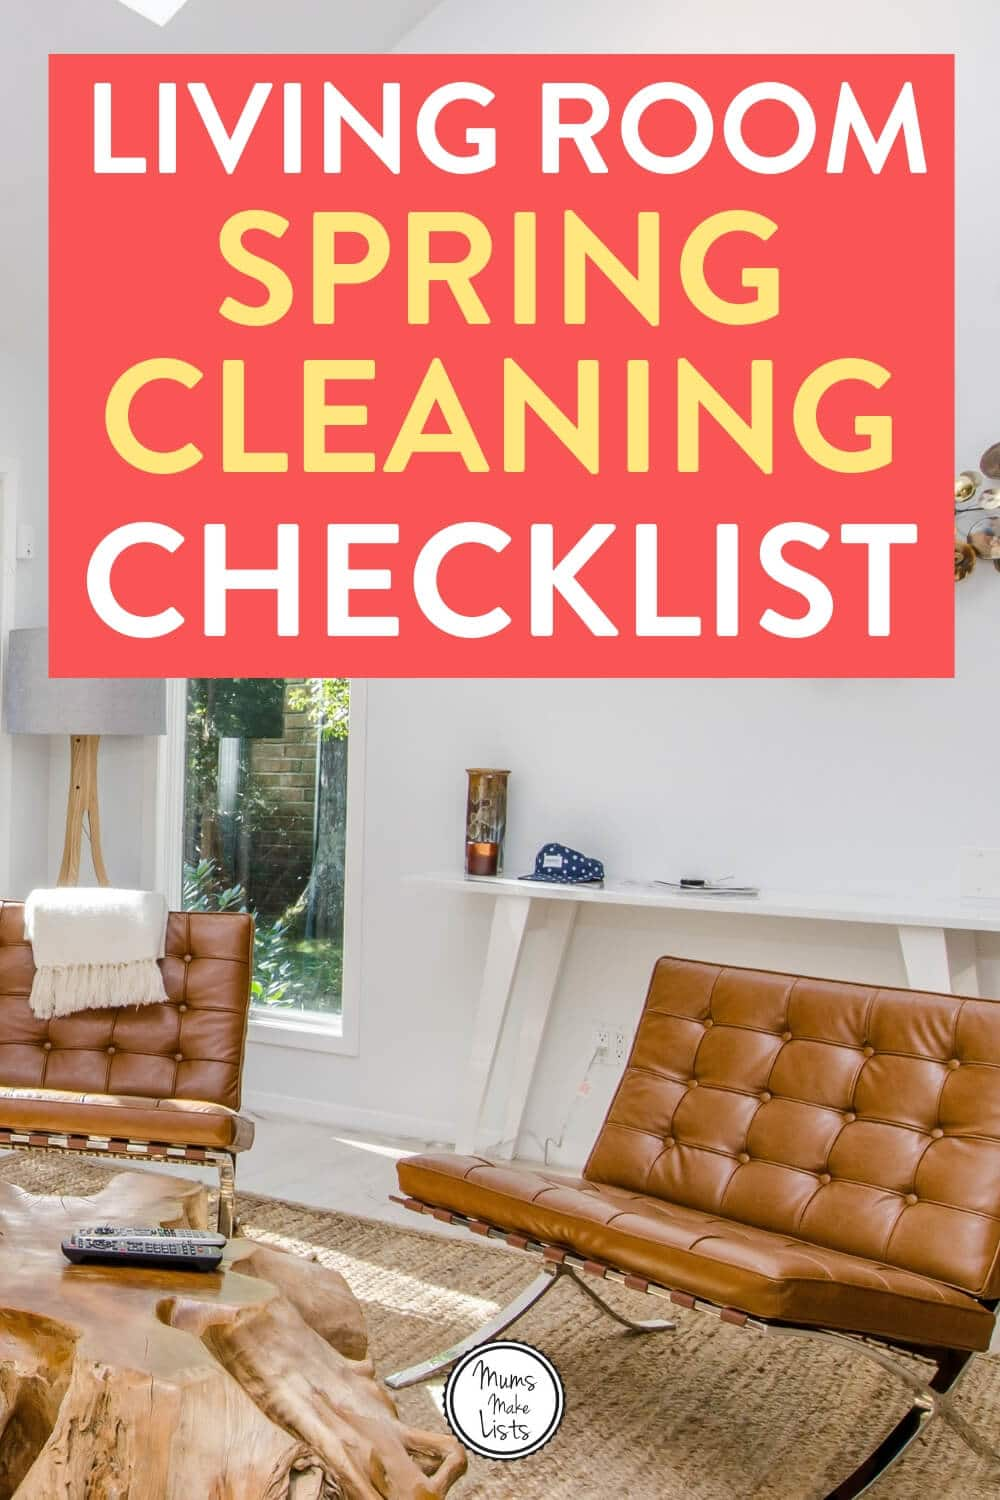 Living room spring cleaning checklist, living room spring clean, spring cleaning checklist, spring cleaning, spring clean